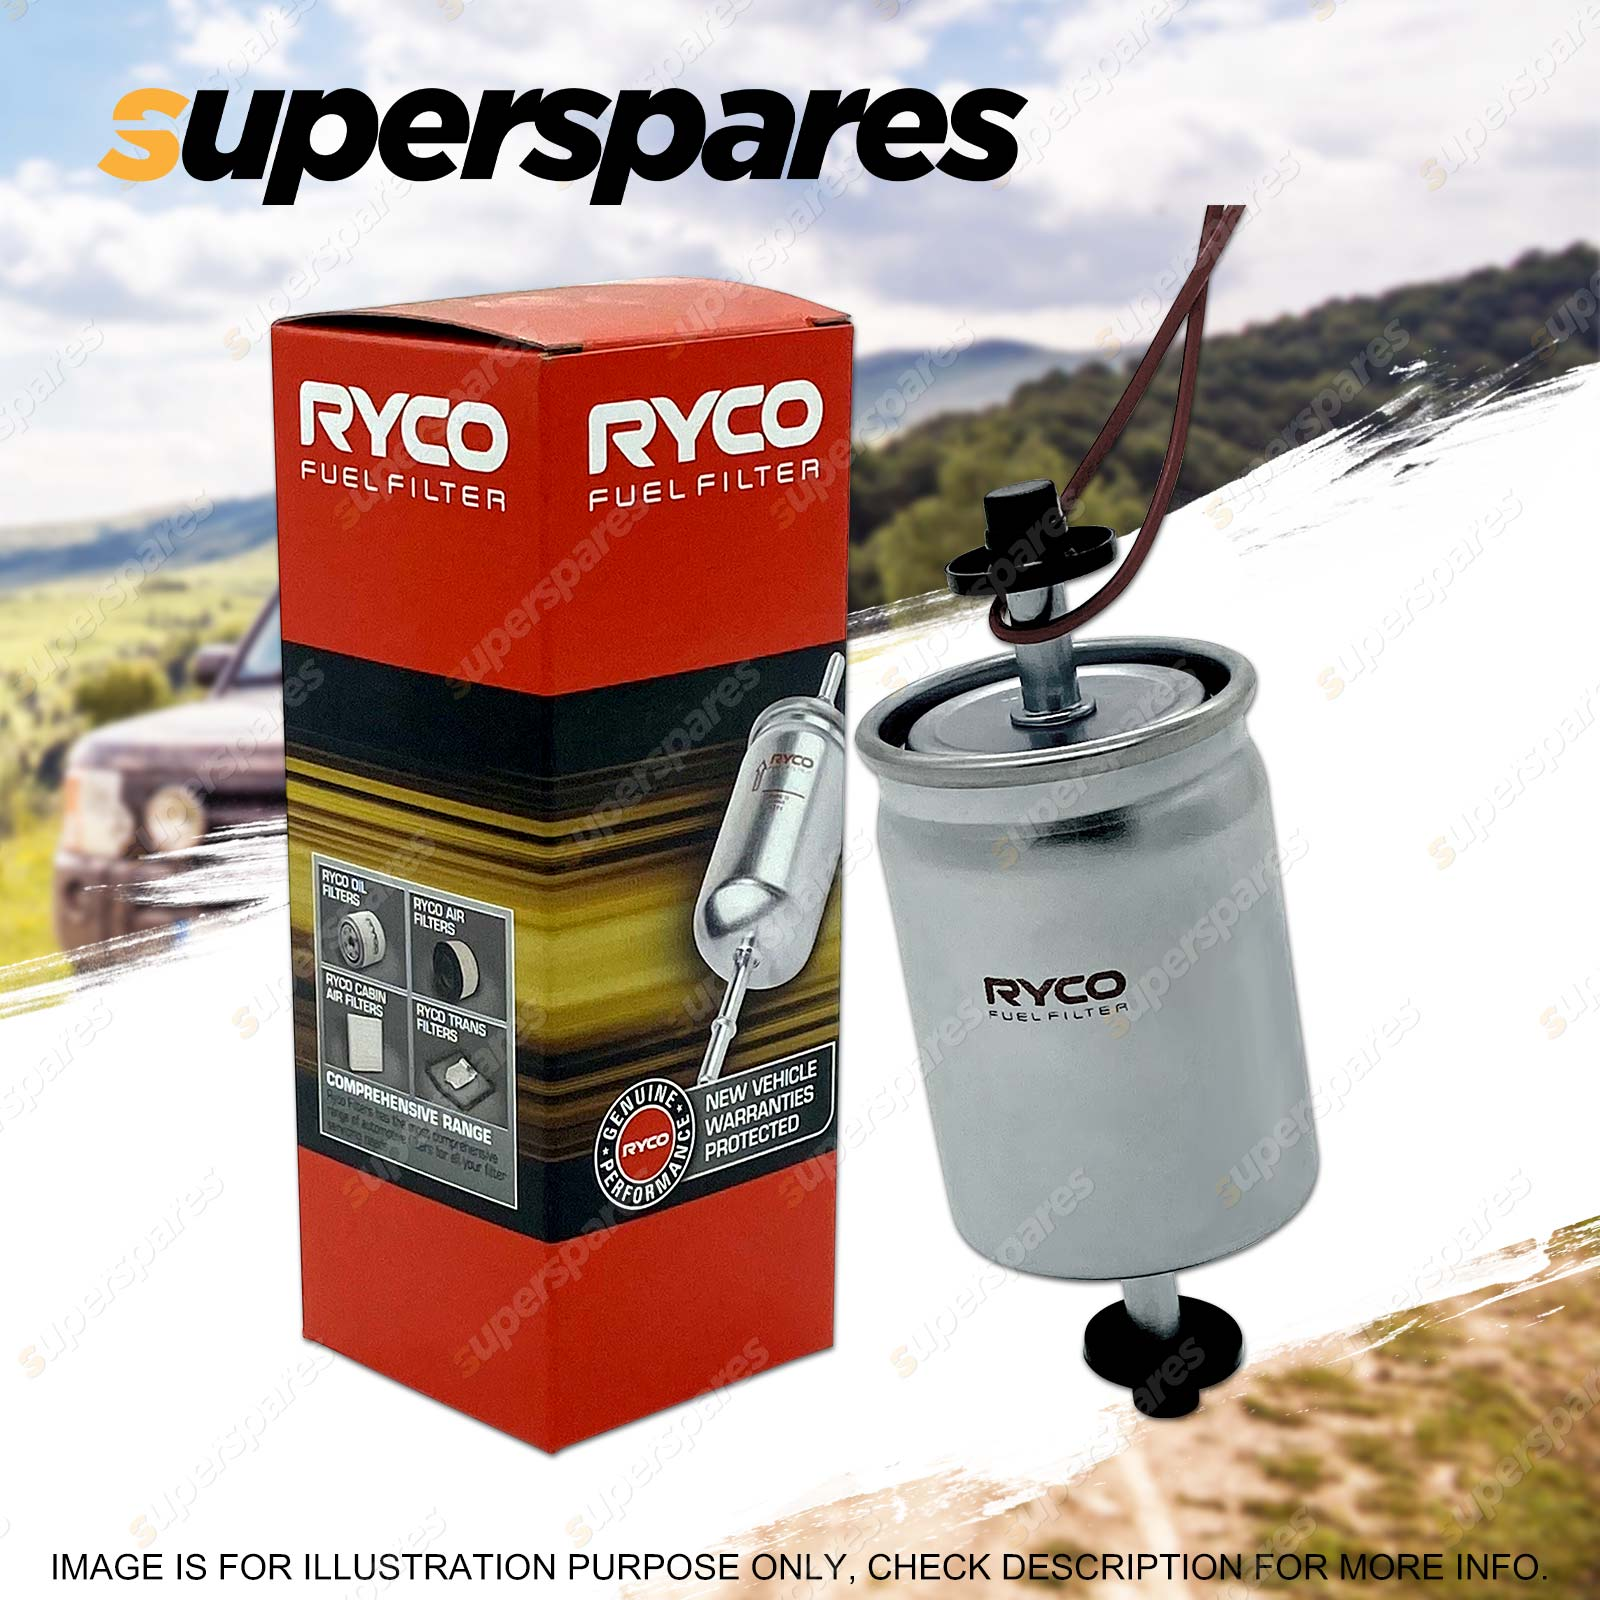 hight resolution of ryco fuel filter for benz sprinter 211 311 411 212 312 412 213 313 413 308 w903